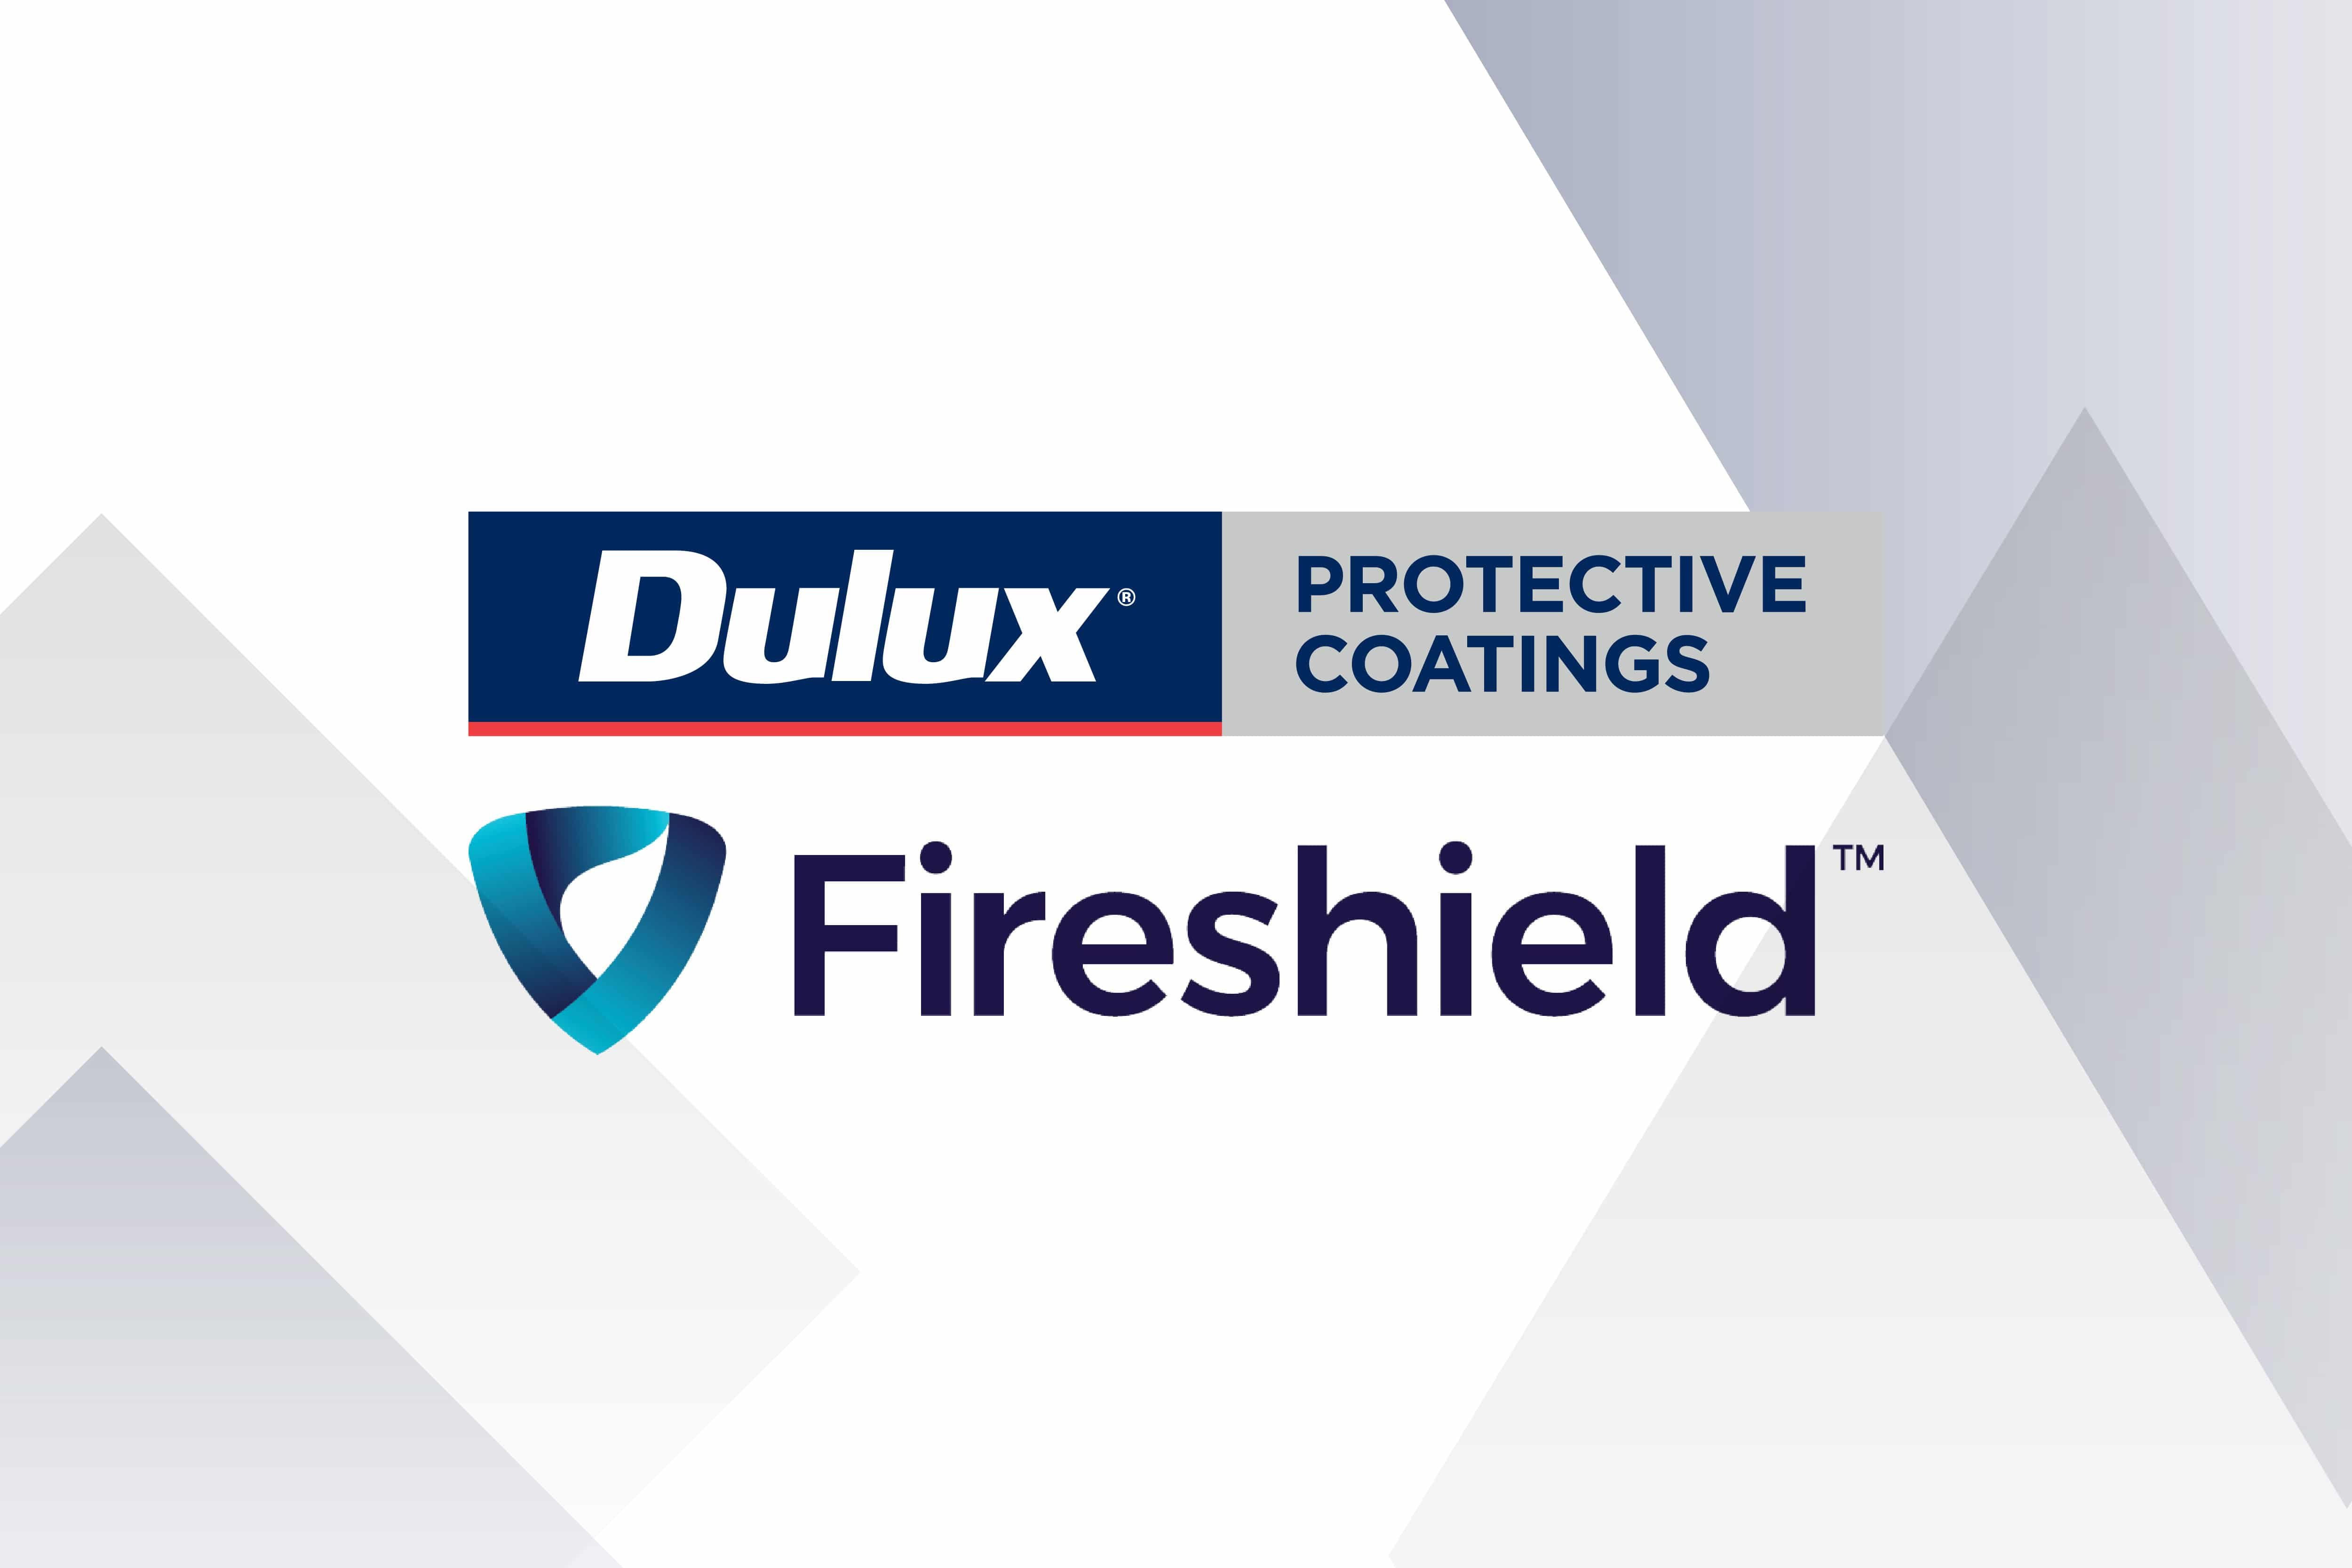 Accredited Applicator Program for Fireshield